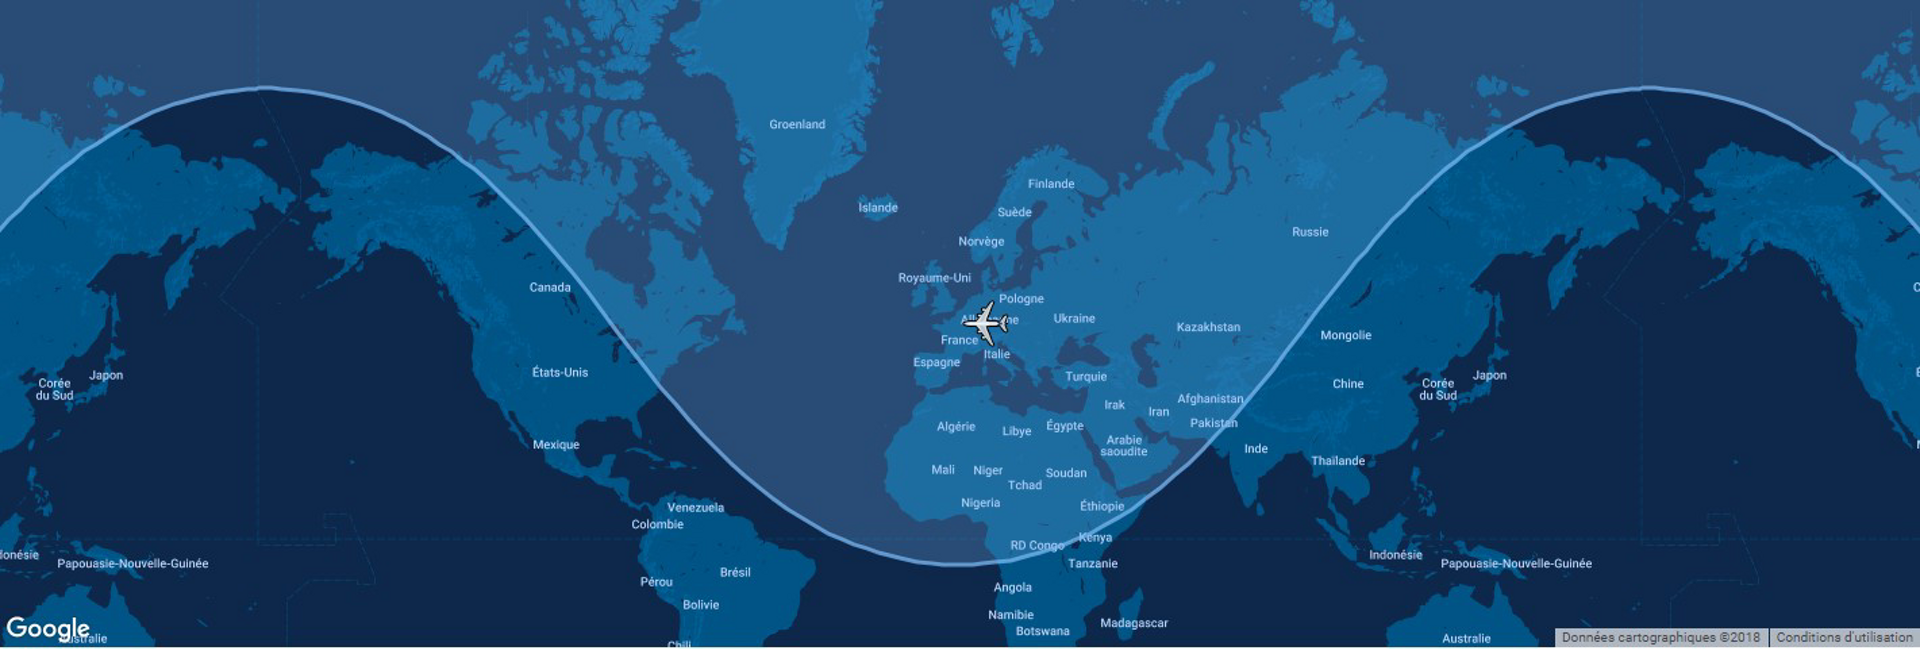 The typical range for Airbus' A320ceo commercial aircraft is shown in this diagram, which includes a global map.